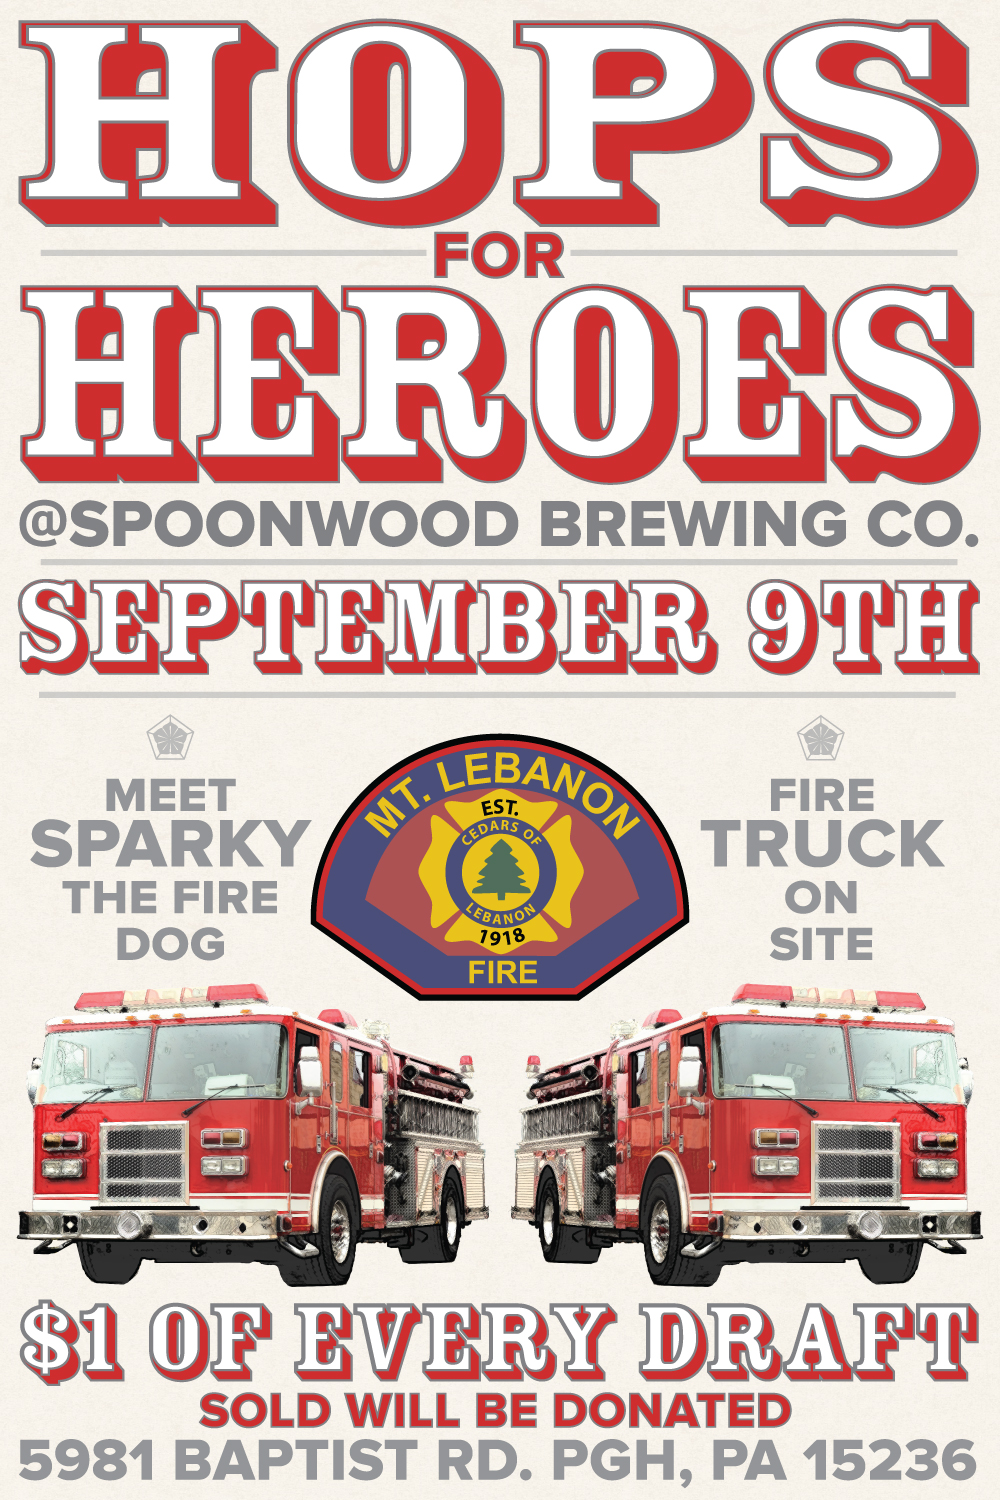 HOPS for HEROES